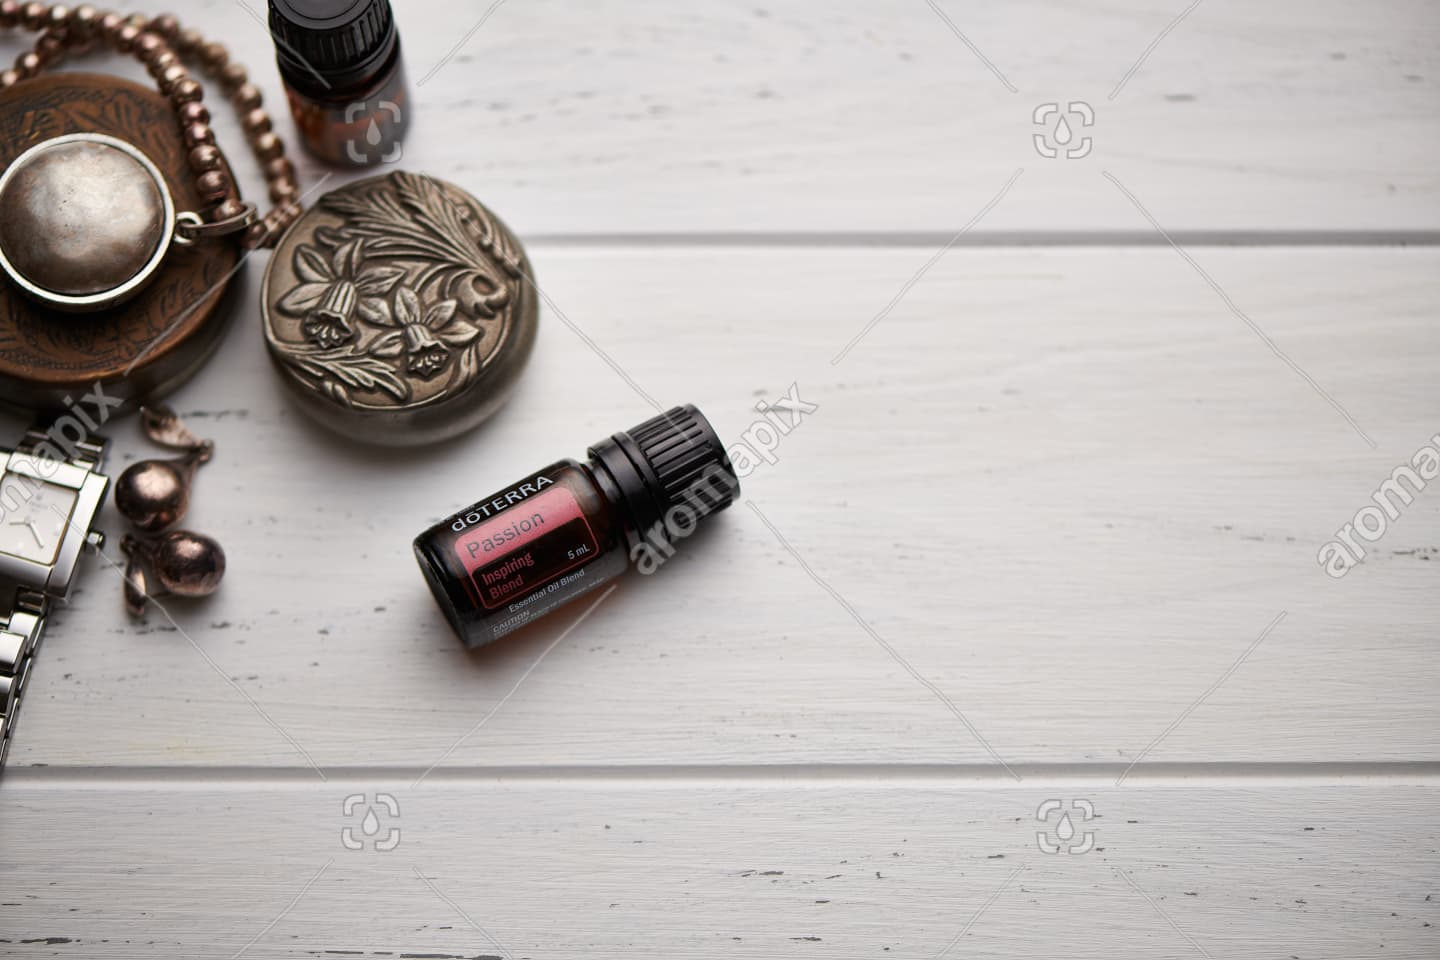 doTERRA Passion on rustic background